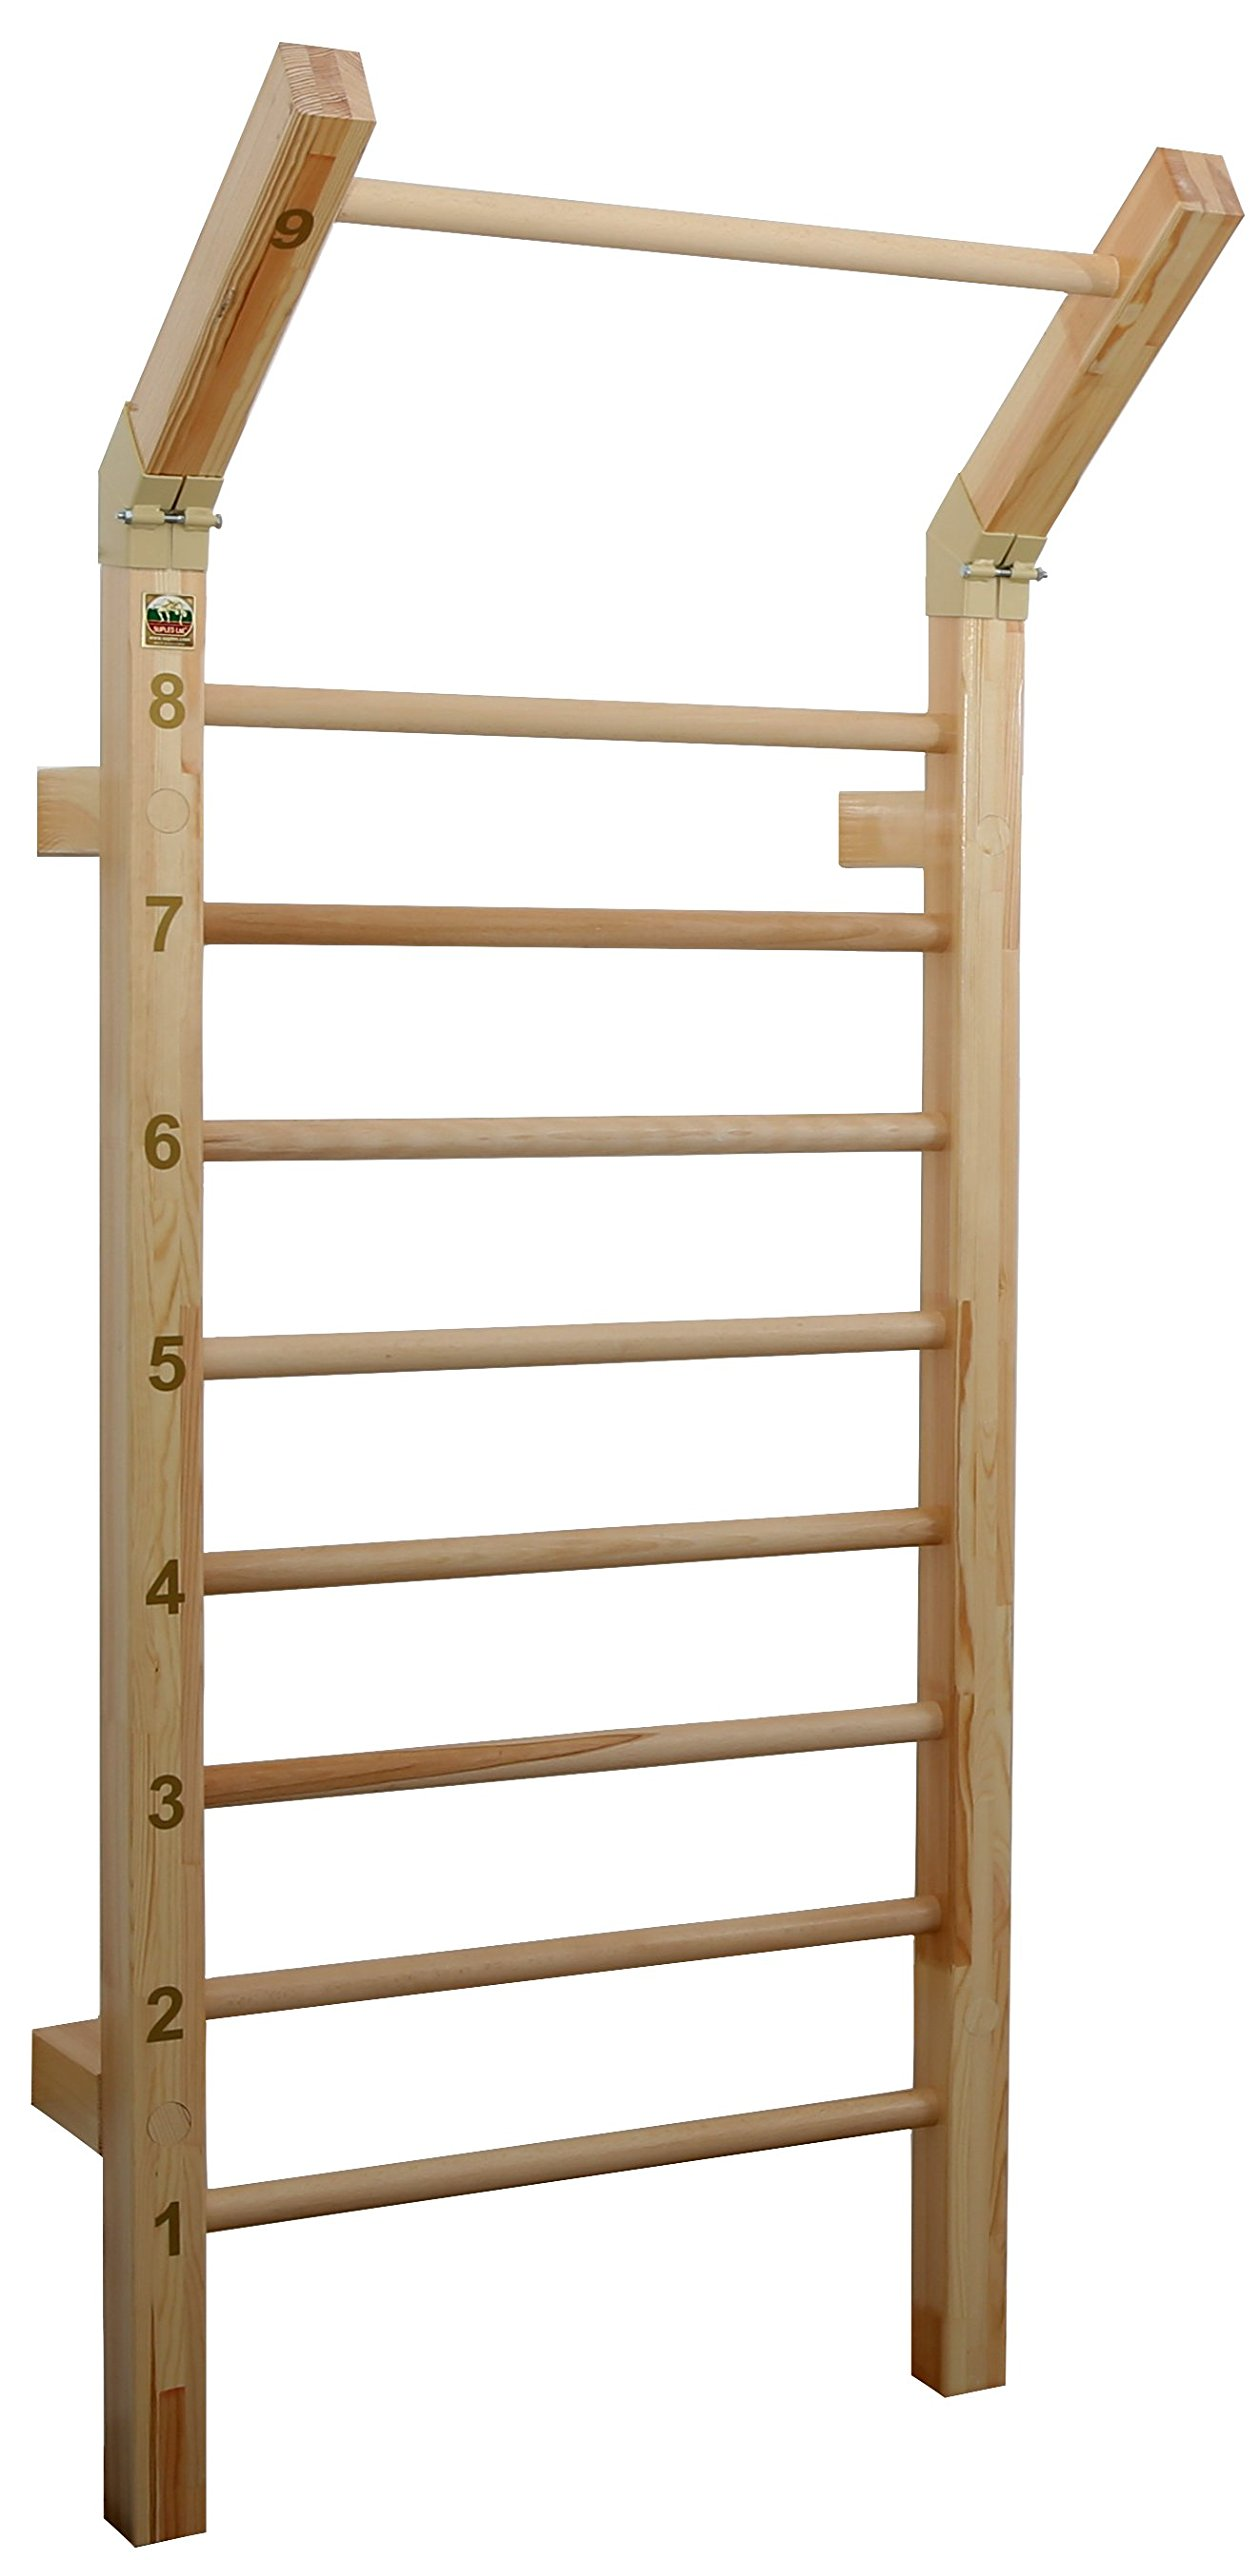 Suples Gladiator Wall - Sturdy & Solid Quality Beach Wood - 400 lb Safety Rating - Ideal for Fitness Centers, Home/Garage Gyms, & Clinics! by Suples